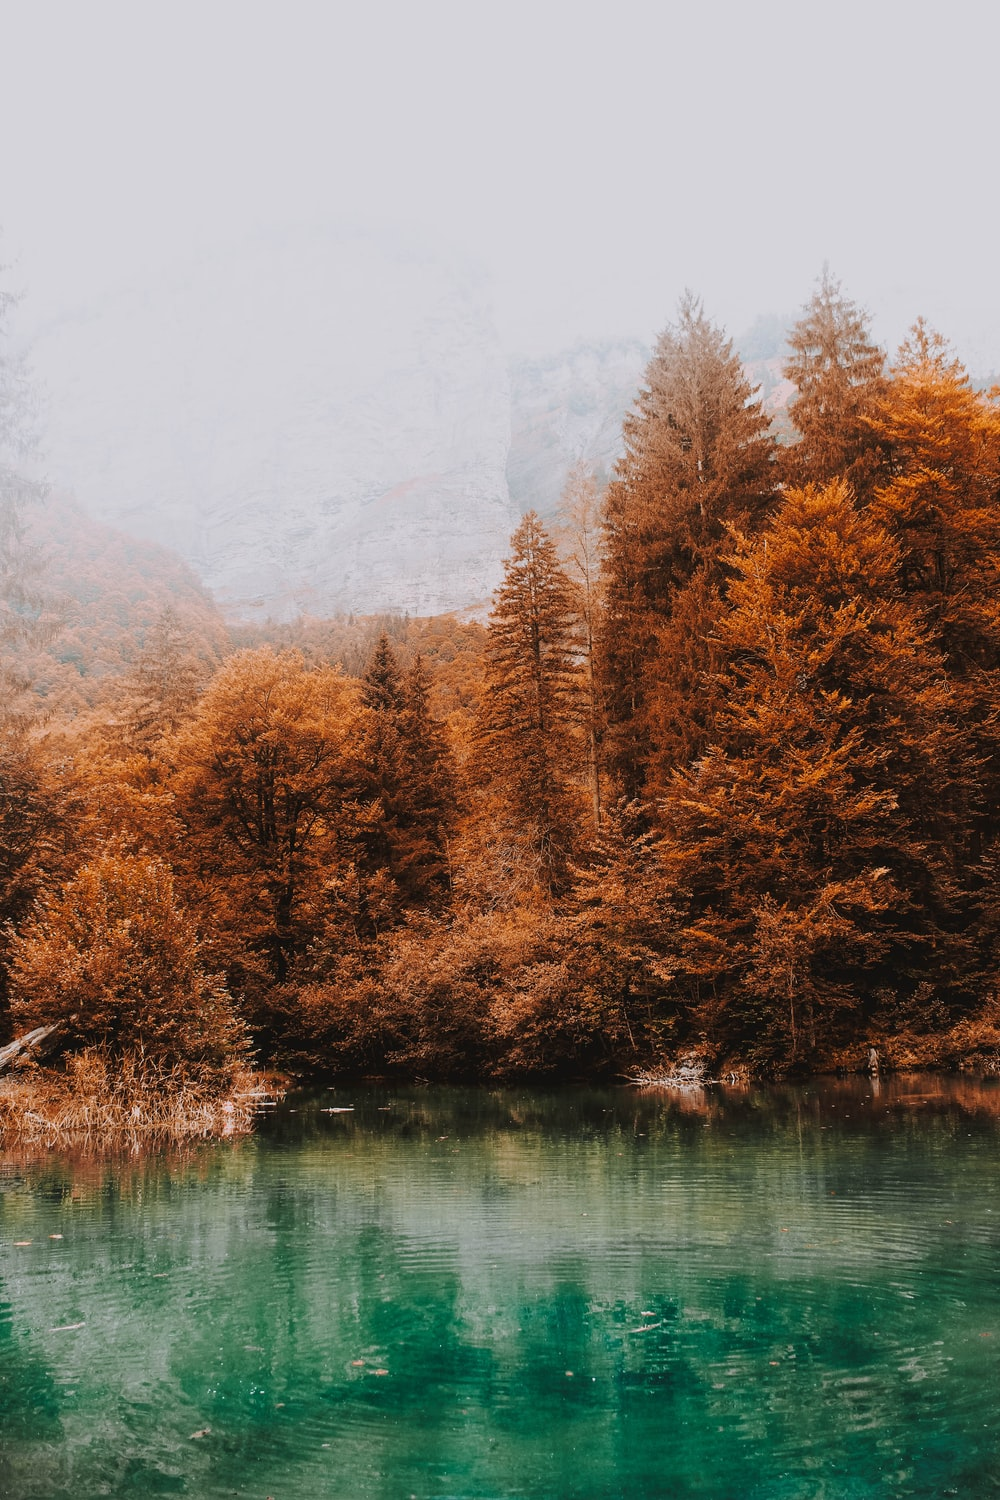 blue lake surrounded by brown leafed trees